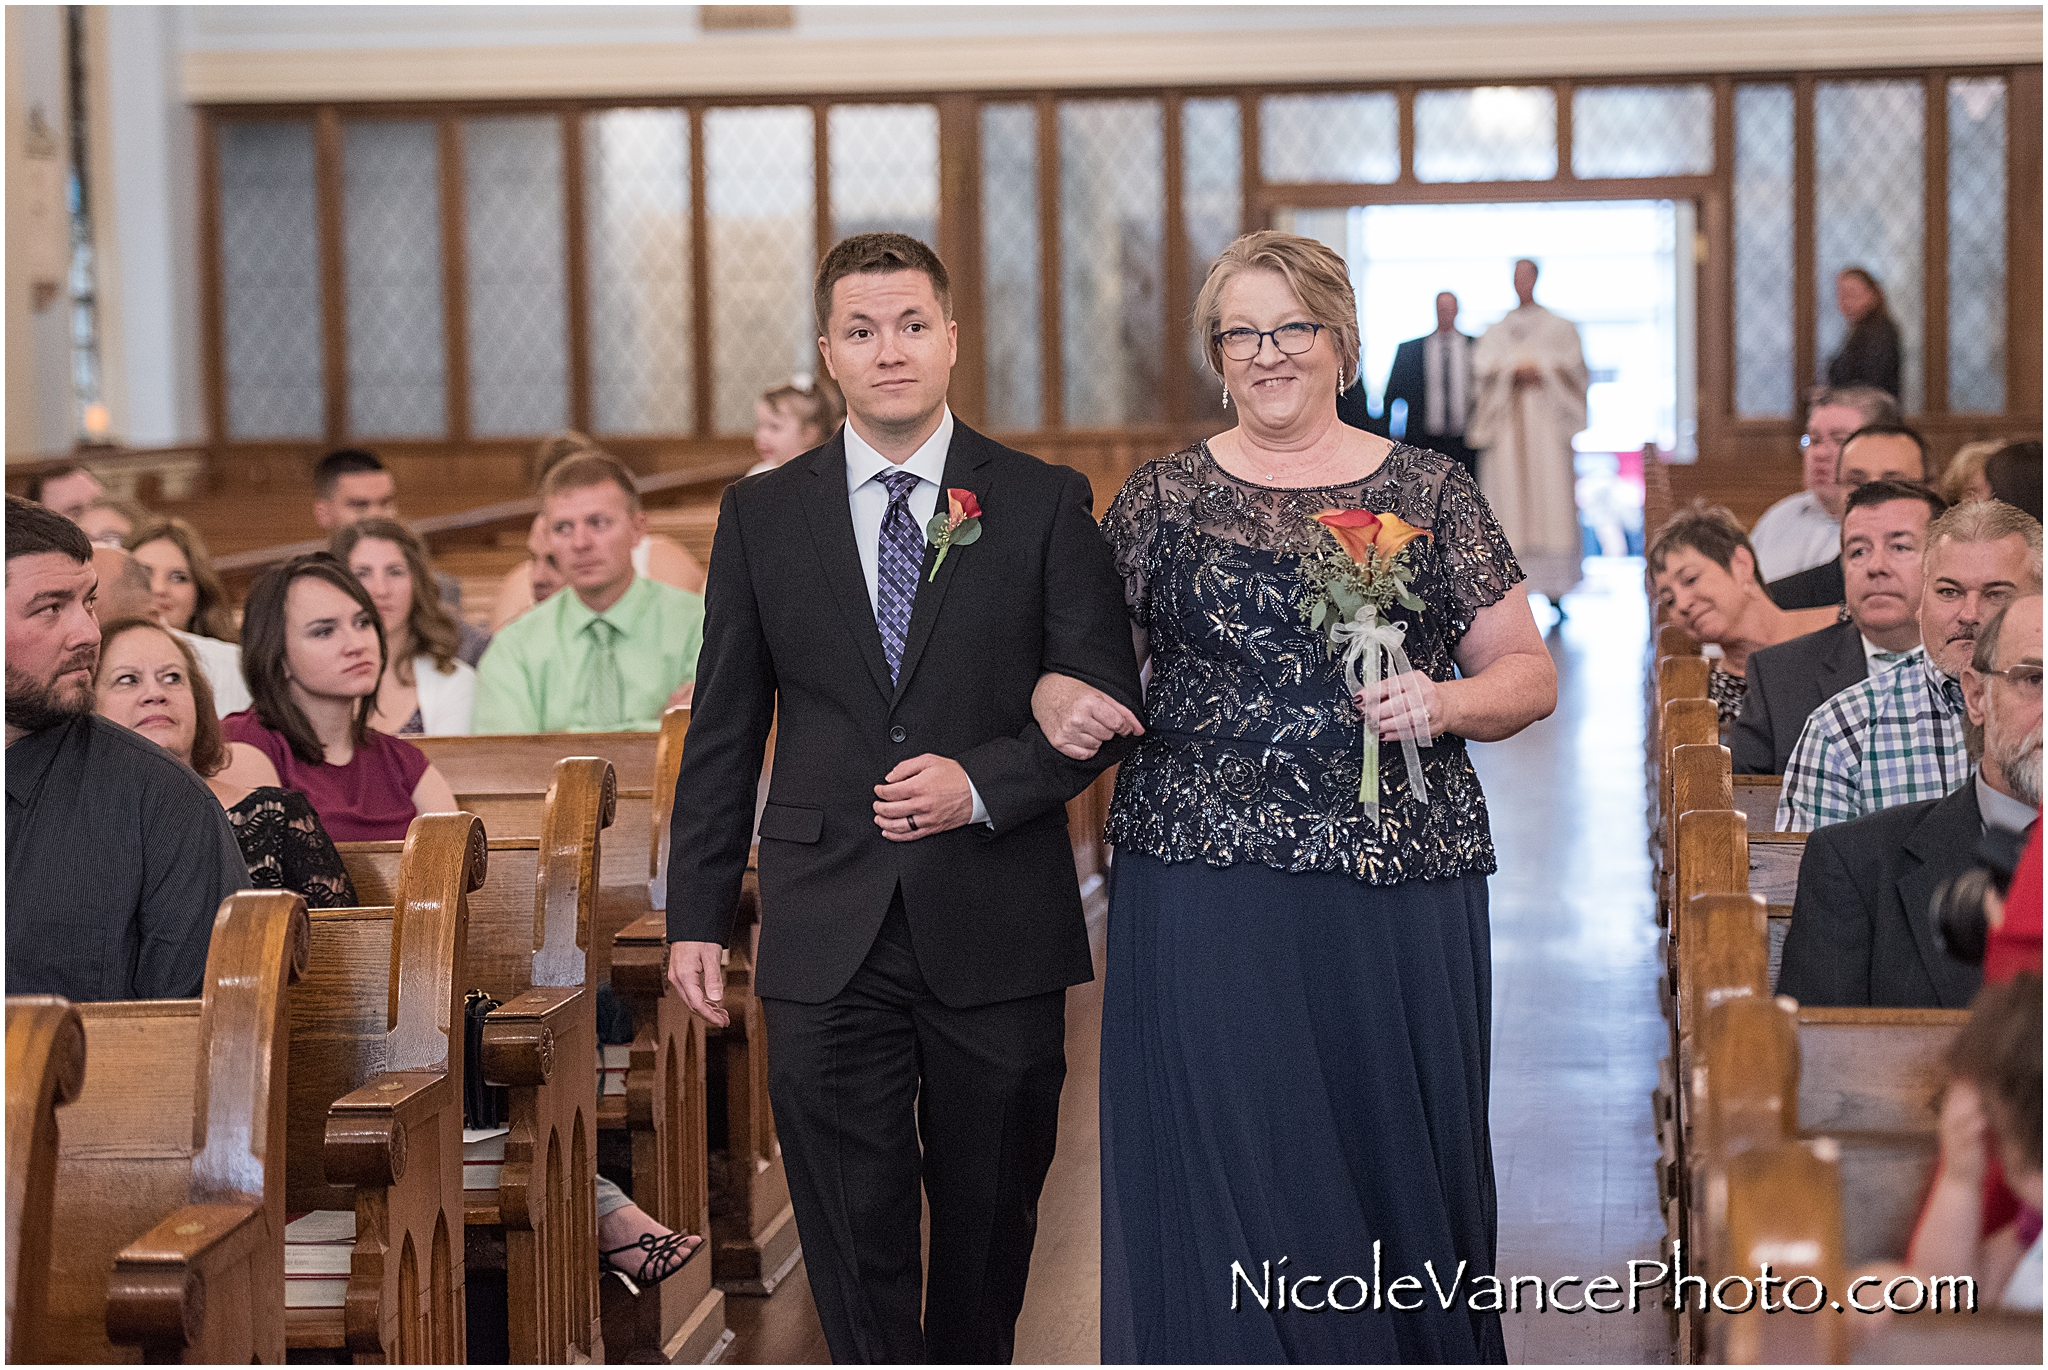 The bride's mom comes down the aisle at St Peter's Catholic Church.